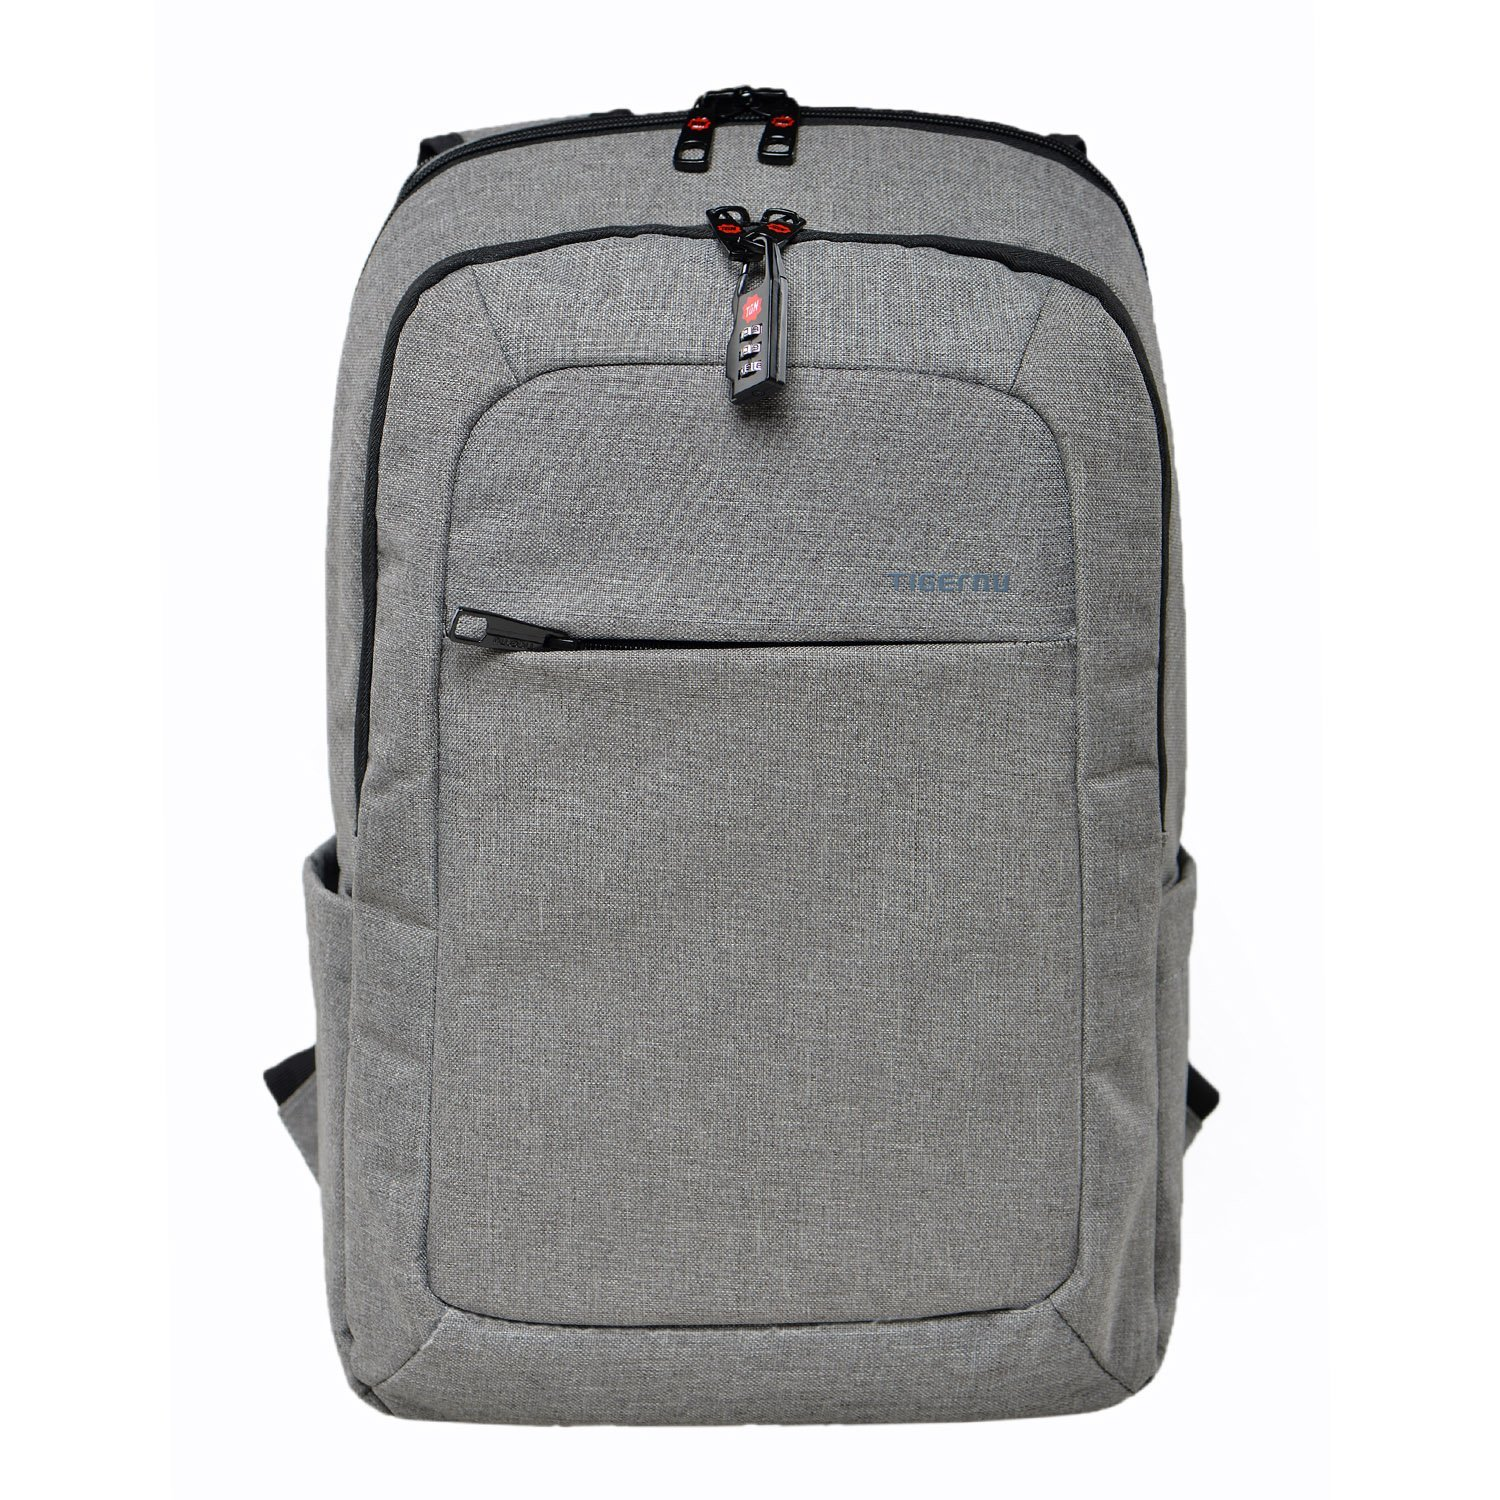 Top 10 Best Laptop Backpacks in 2018